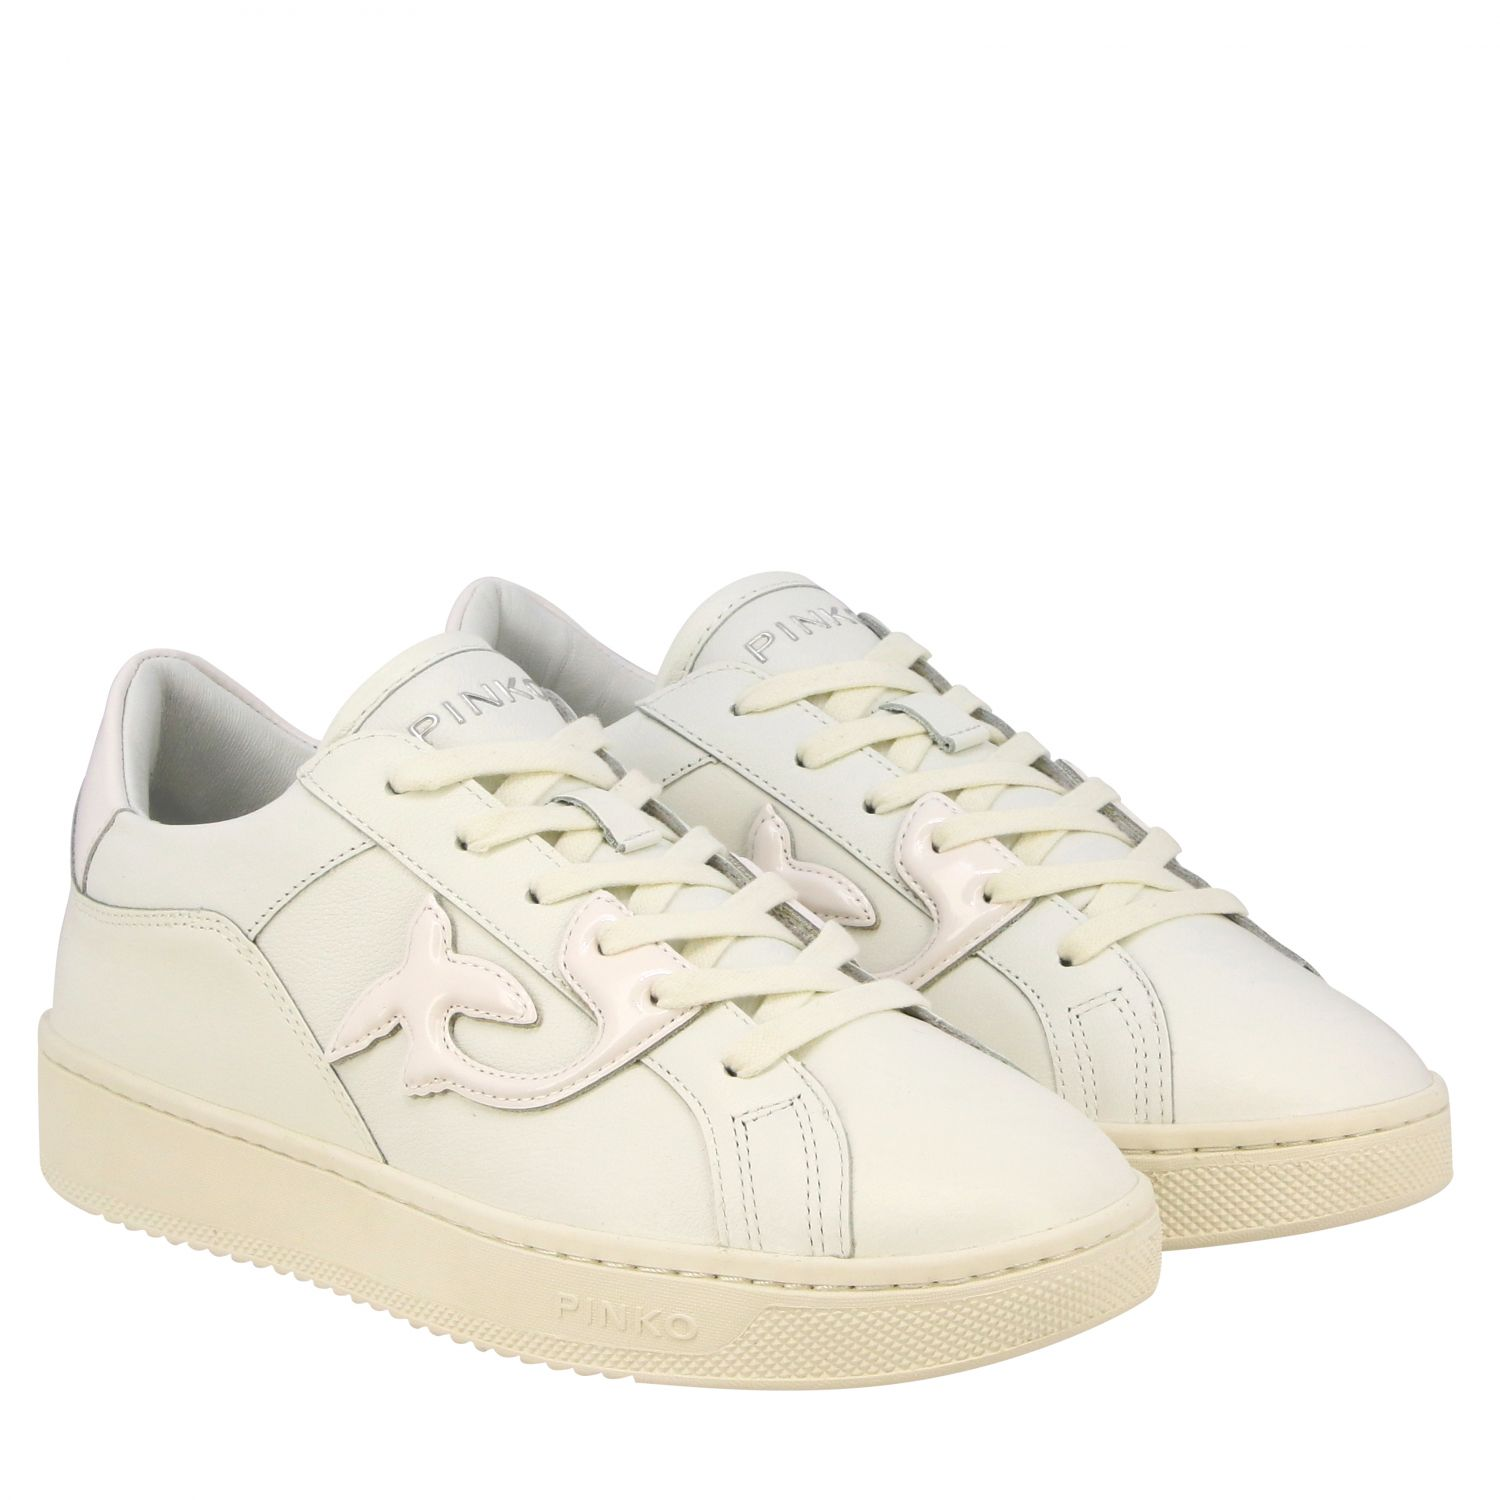 Shoes women Pinko white 2